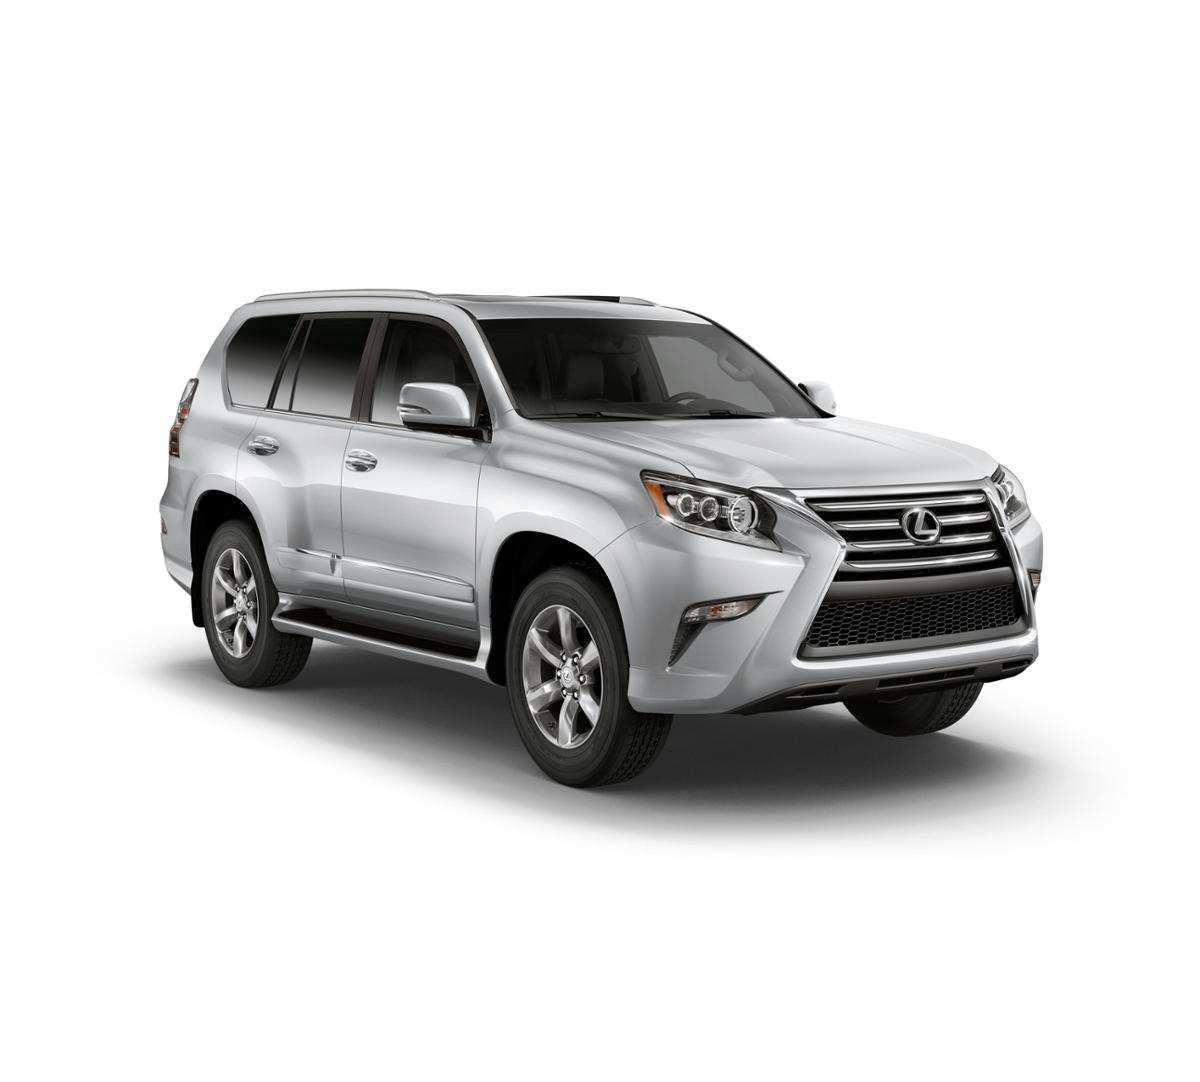 78 Concept of 2019 Lexus Gx 460 Review for 2019 Lexus Gx 460